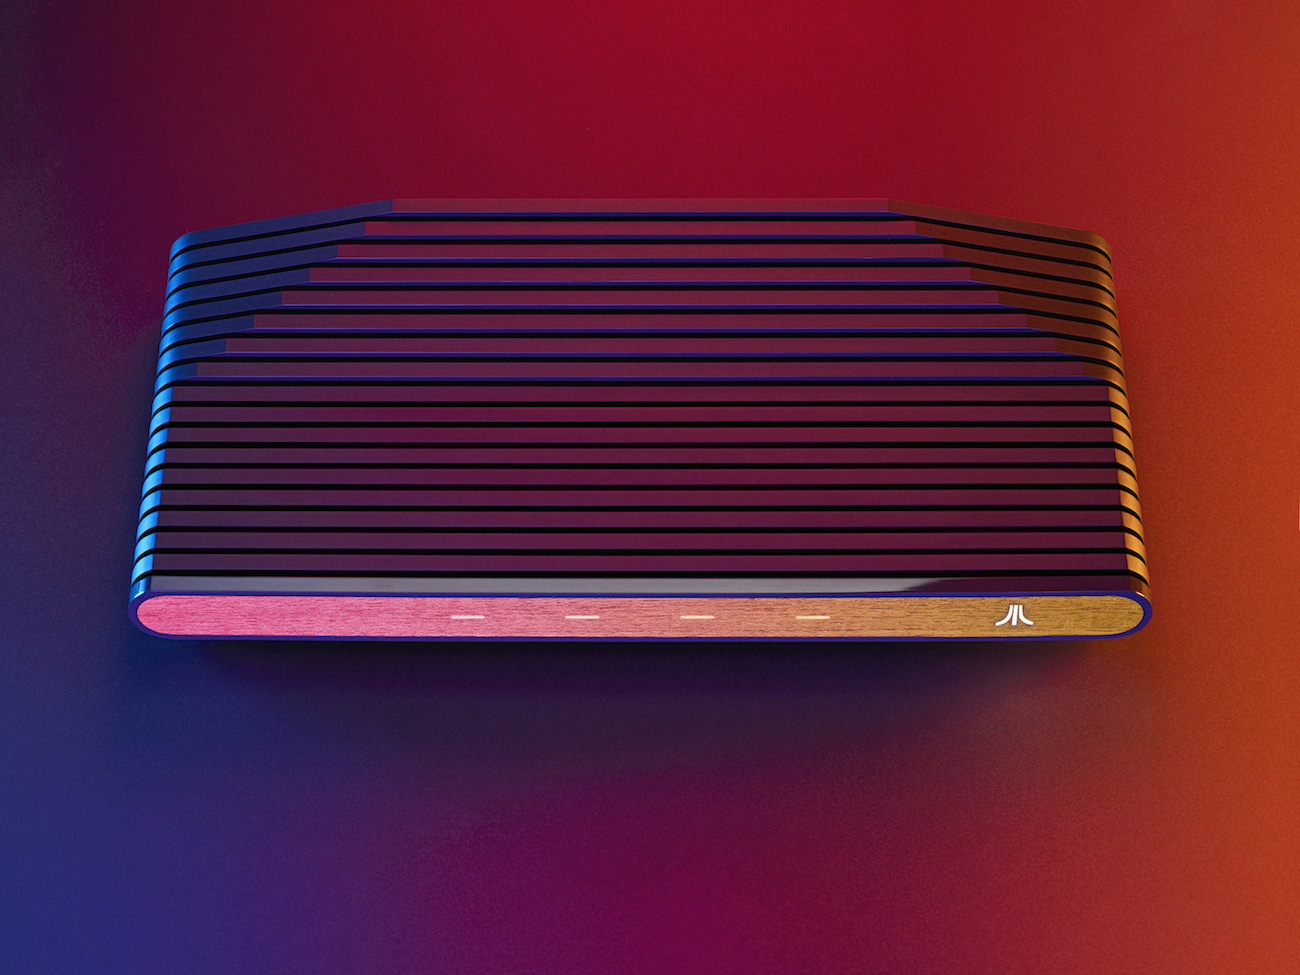 q05162018_Atari_Stylized_Console_WOOD_STACKED_01_FINAL